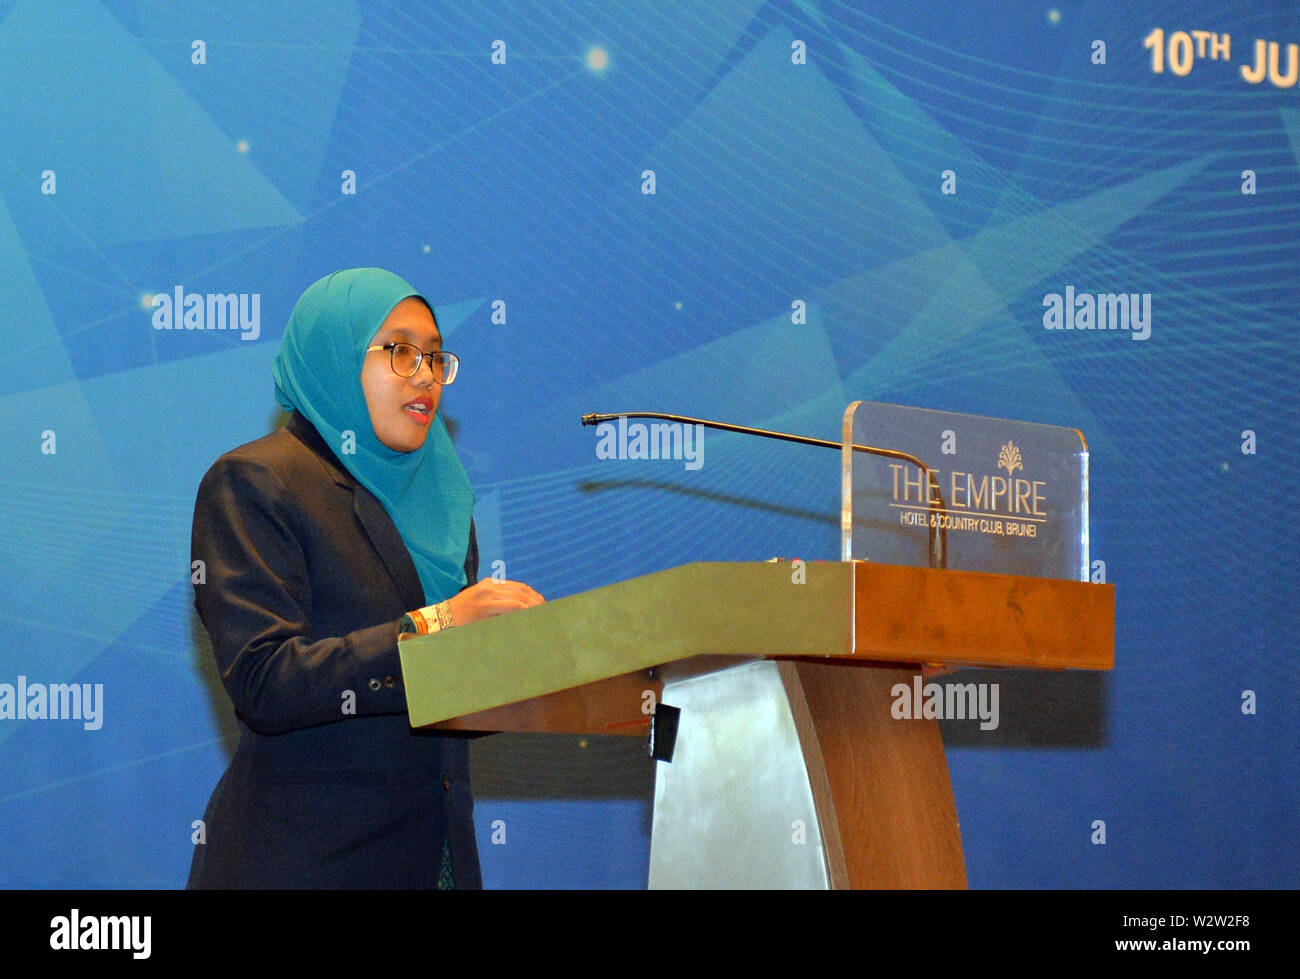 (190710) -- BANDAR SERI BEGAWAN, July 10, 2019 (Xinhua) -- A scholarship recipient gives a speech during a graduation ceremony for the fifth batch of 11 scholarship students under the Joint Chemical and Process Engineering Scholarship Program provided by Hengyi Industries Sdn Bhd, in Bandar Seri Begawan, capital of Brunei, July 10, 2019. Hengyi Industries Sdn Bhd, a China-Brunei joint venture, hopes to provide at least 50 percent of over 2,000 new jobs to local Bruneians in the second phase of Pulau Muara Besar (PMB) refinery and petrochemical plant, Li Peng, director of General Affairs of Hen - Stock Image